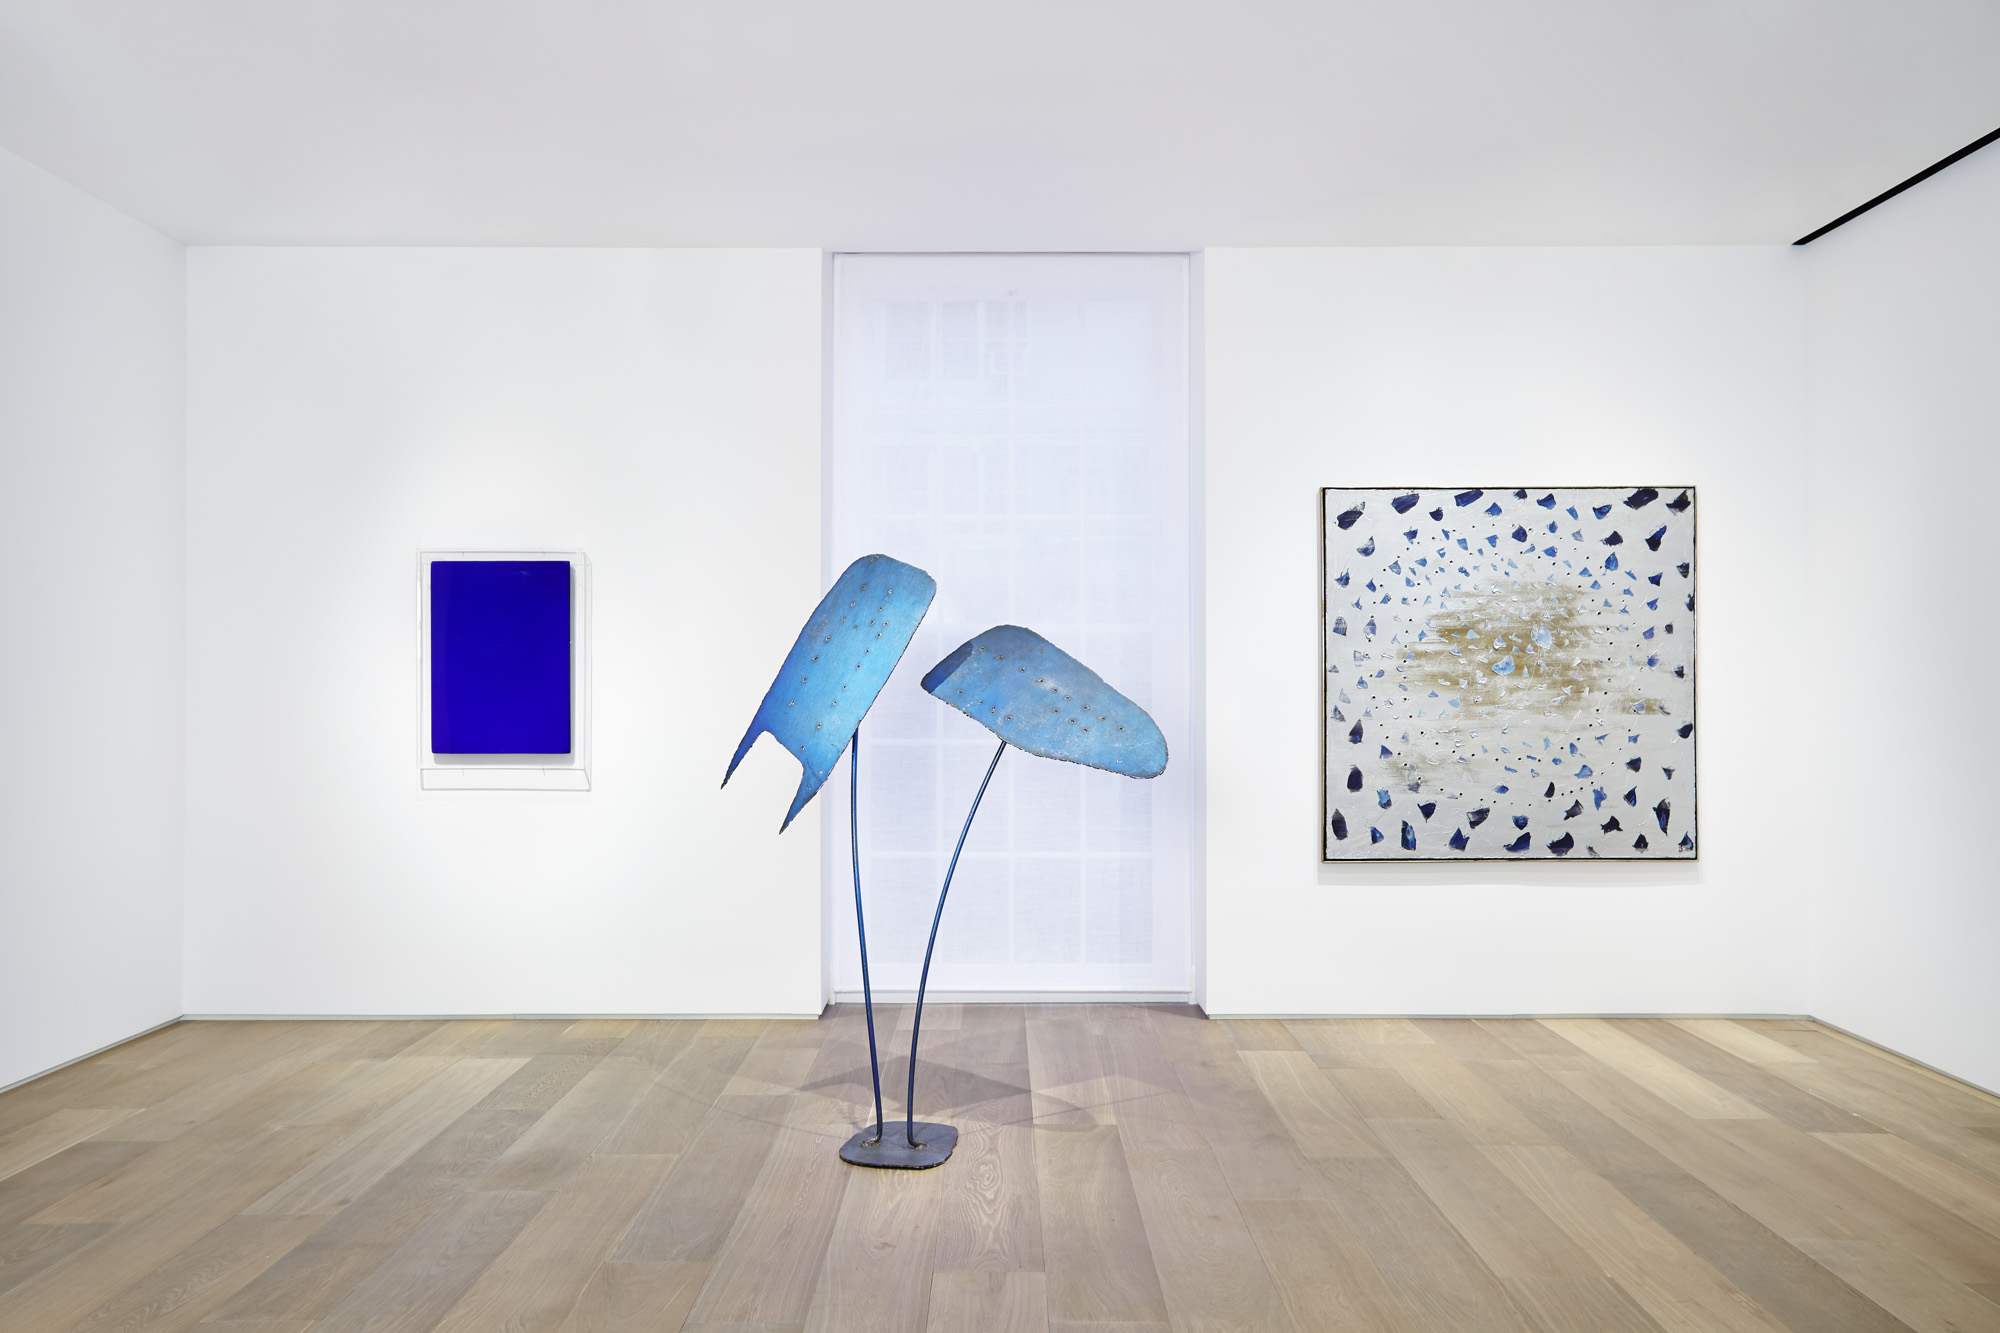 Yves Klein, Lucio Fontana, Cy Twombly, Dominique Levy Gallery